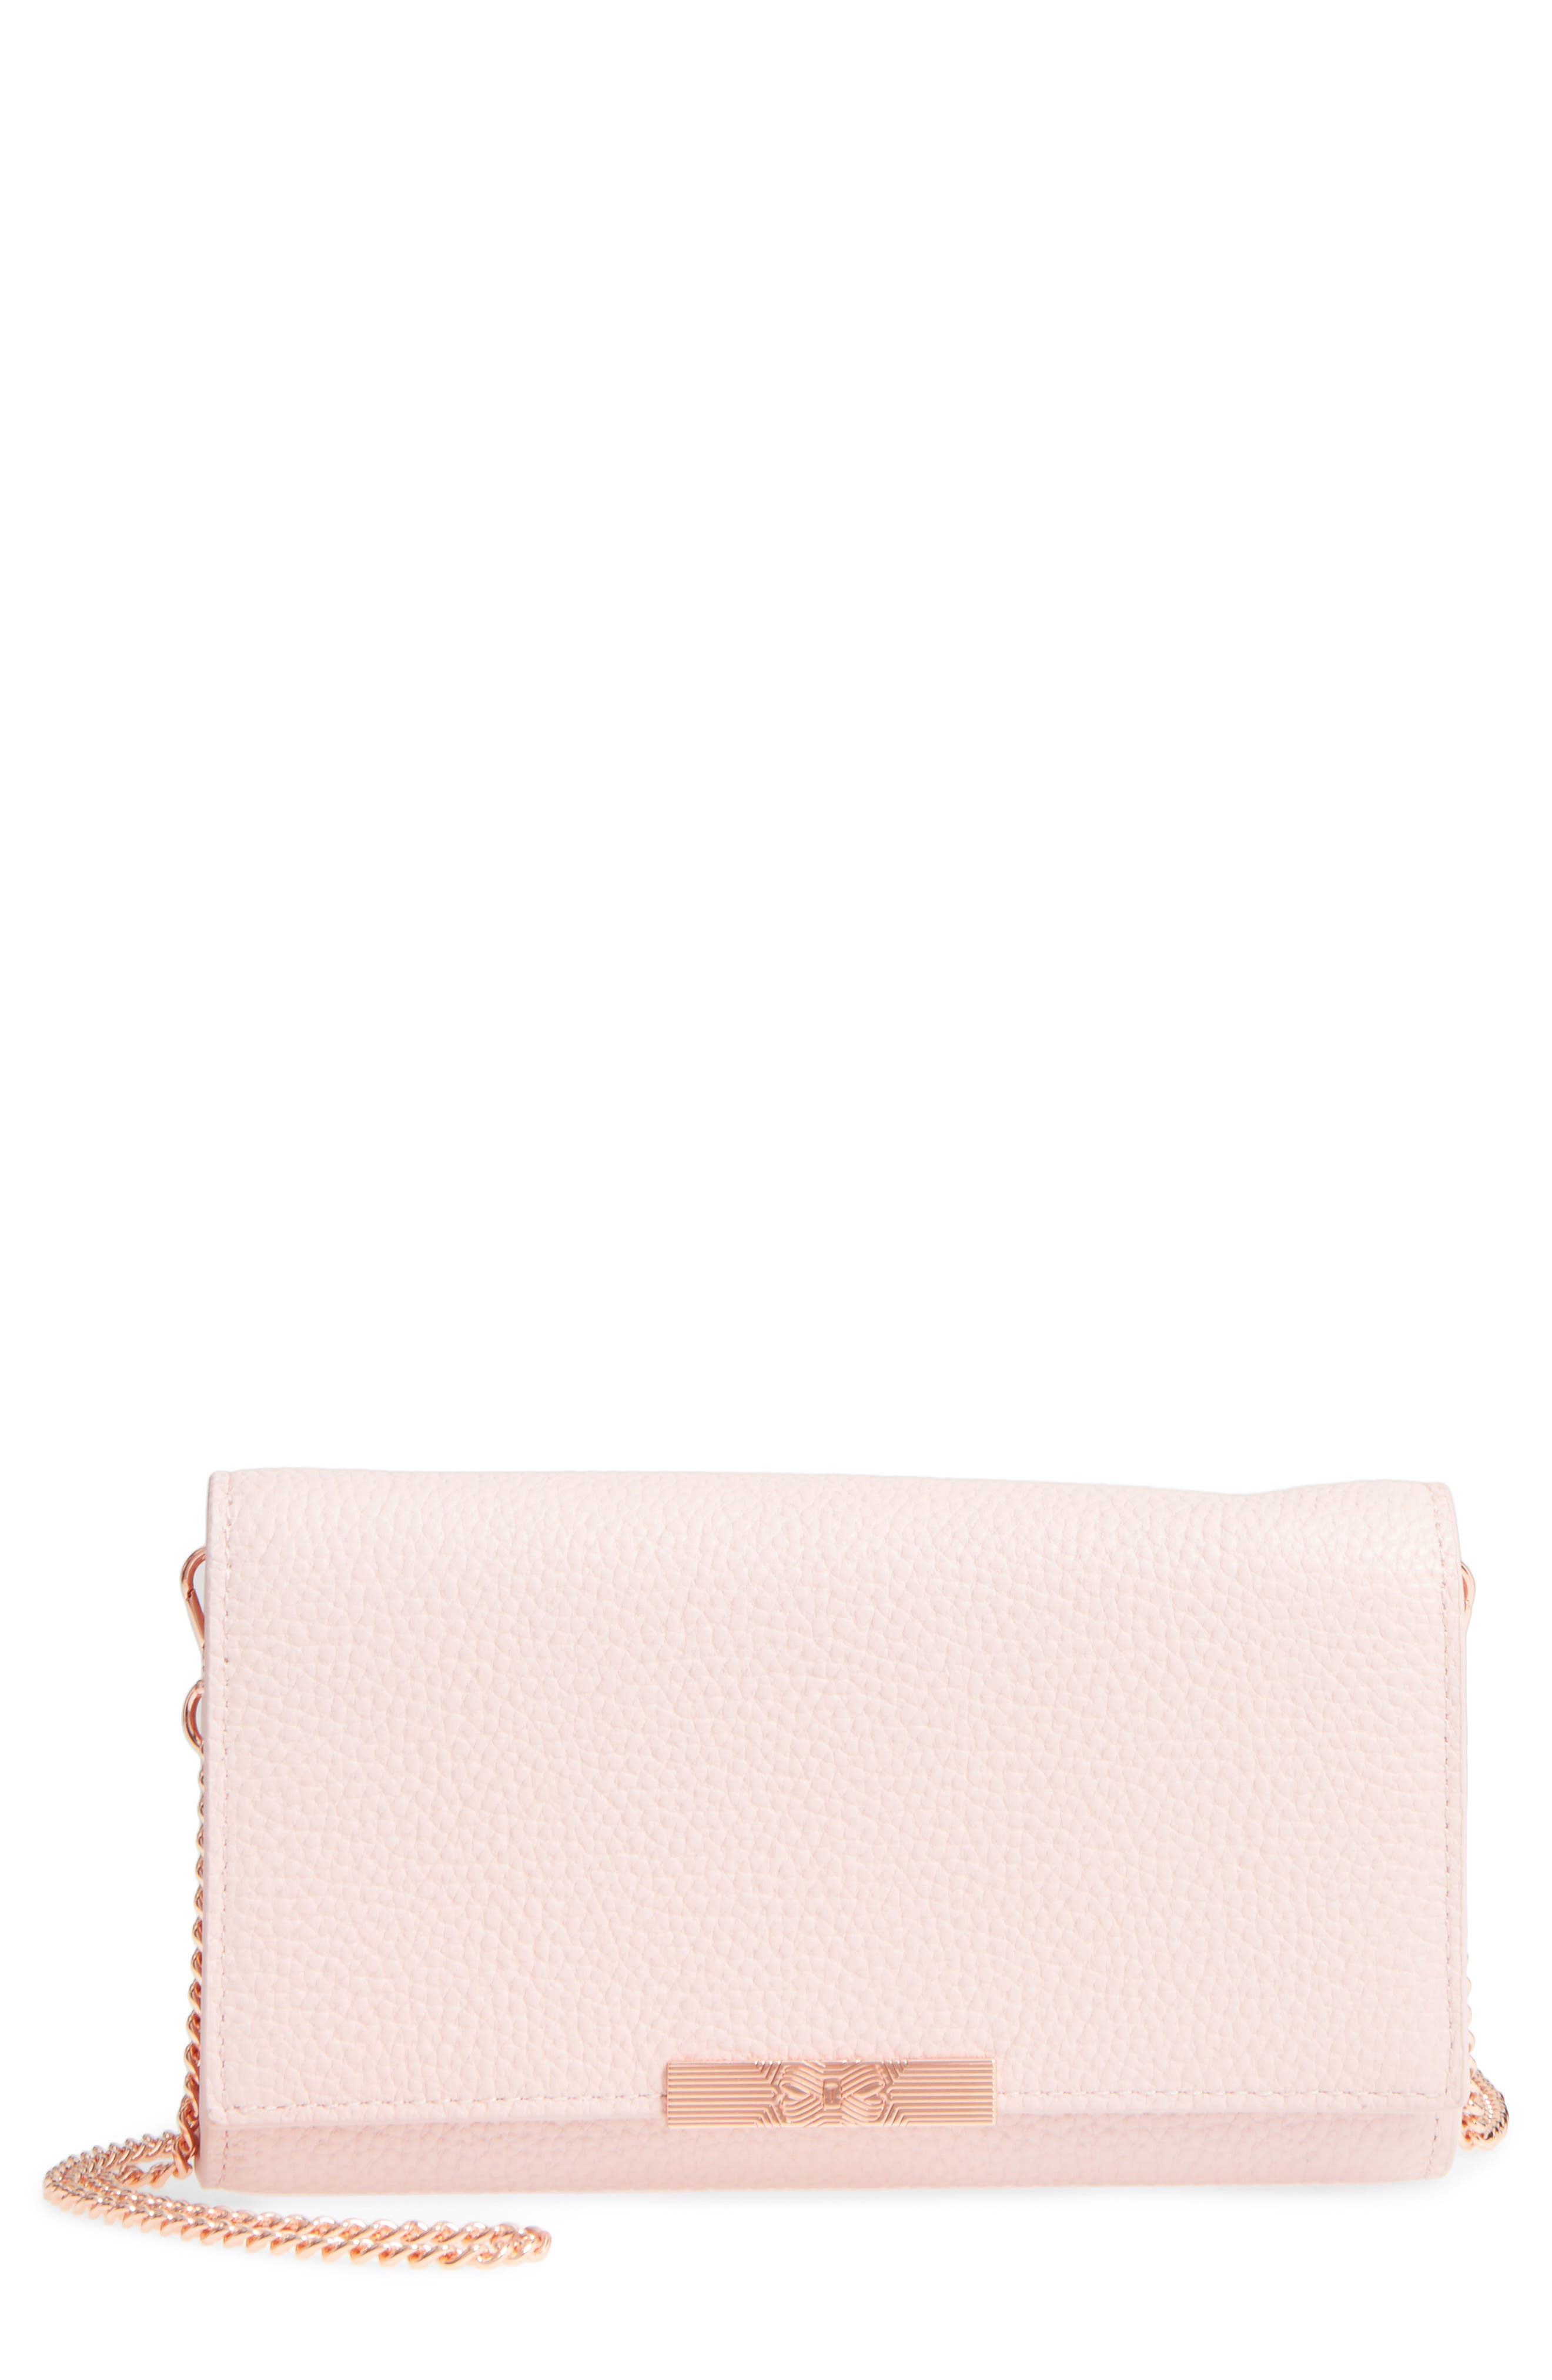 Main Image - Ted Baker London Leather Wallet on a Chain